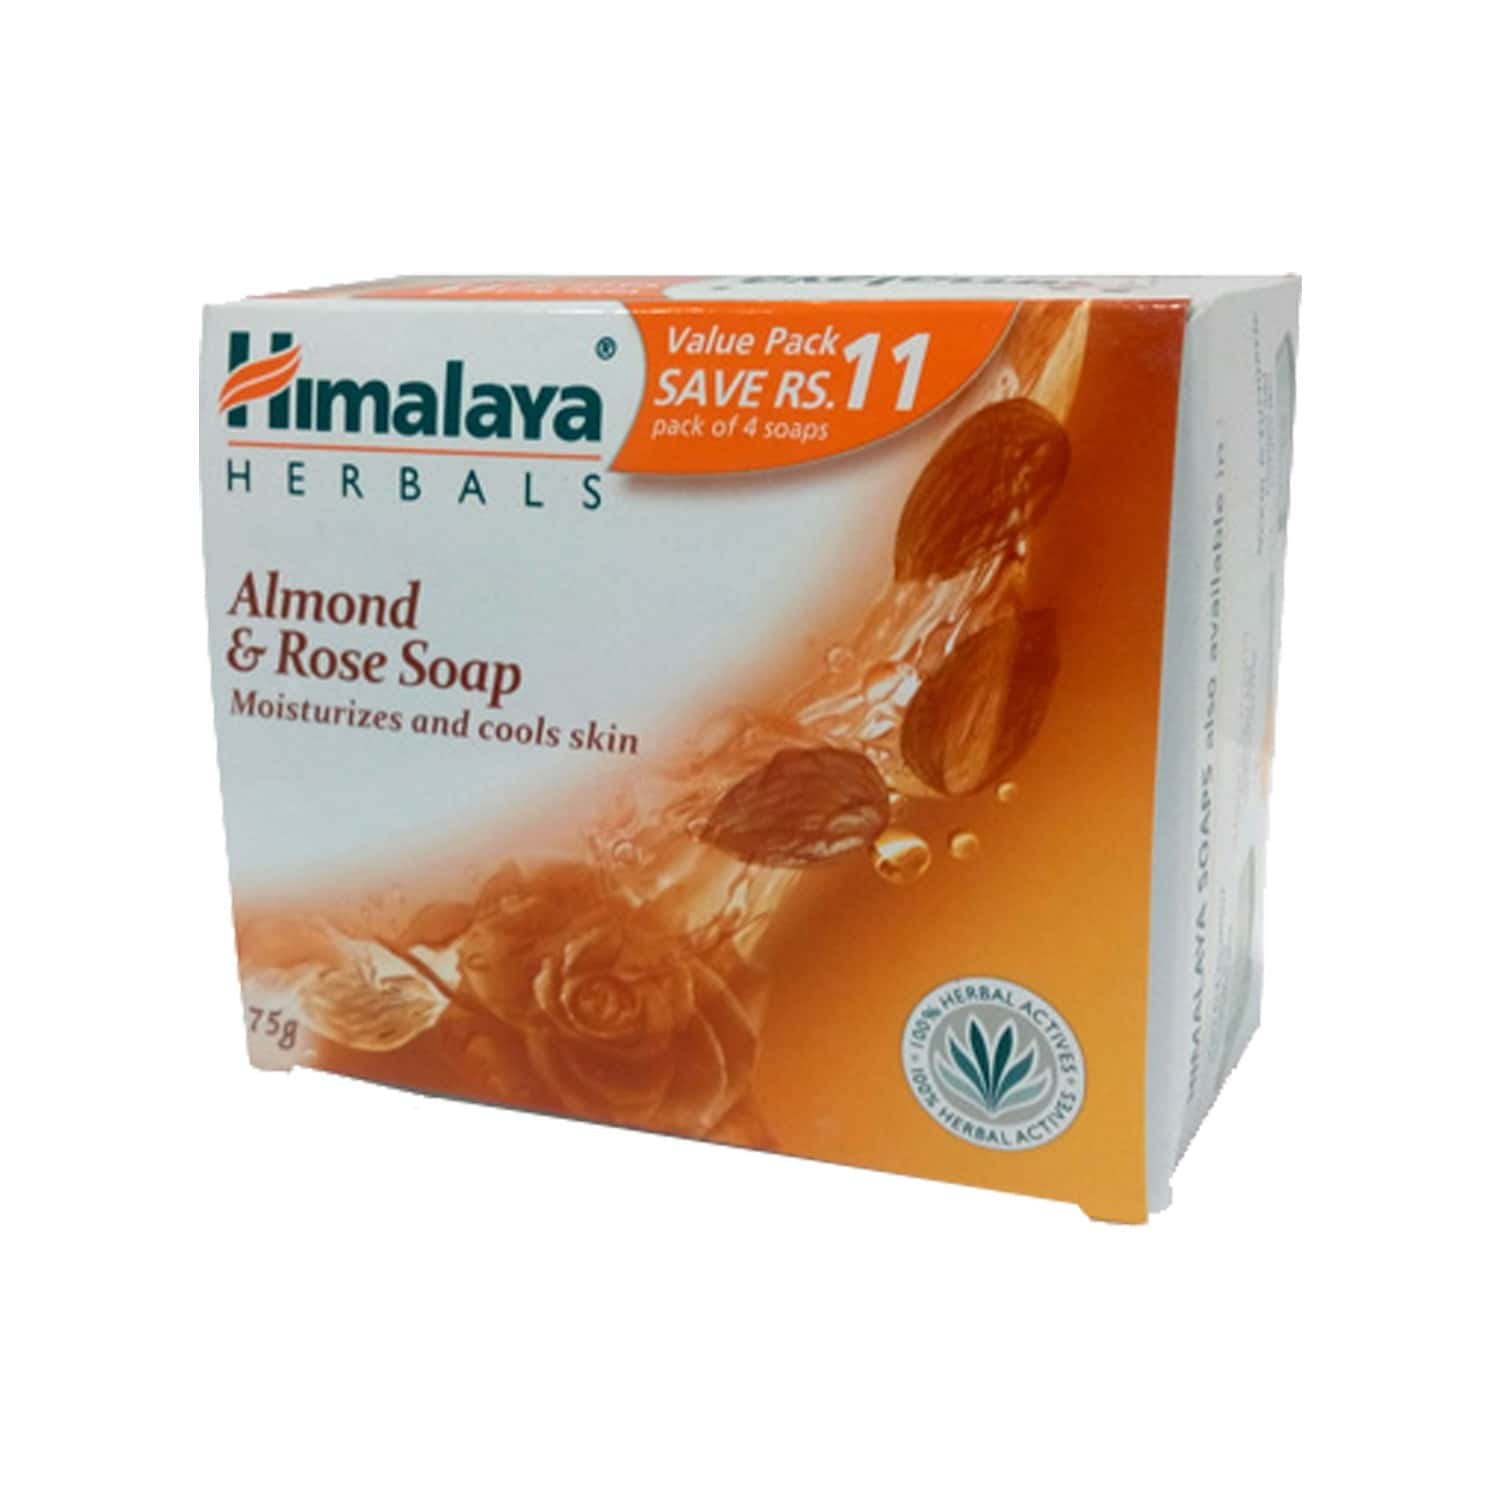 Himalaya Almond & Rose Soap 75gx4n (value Pack Save Rs.11/-)